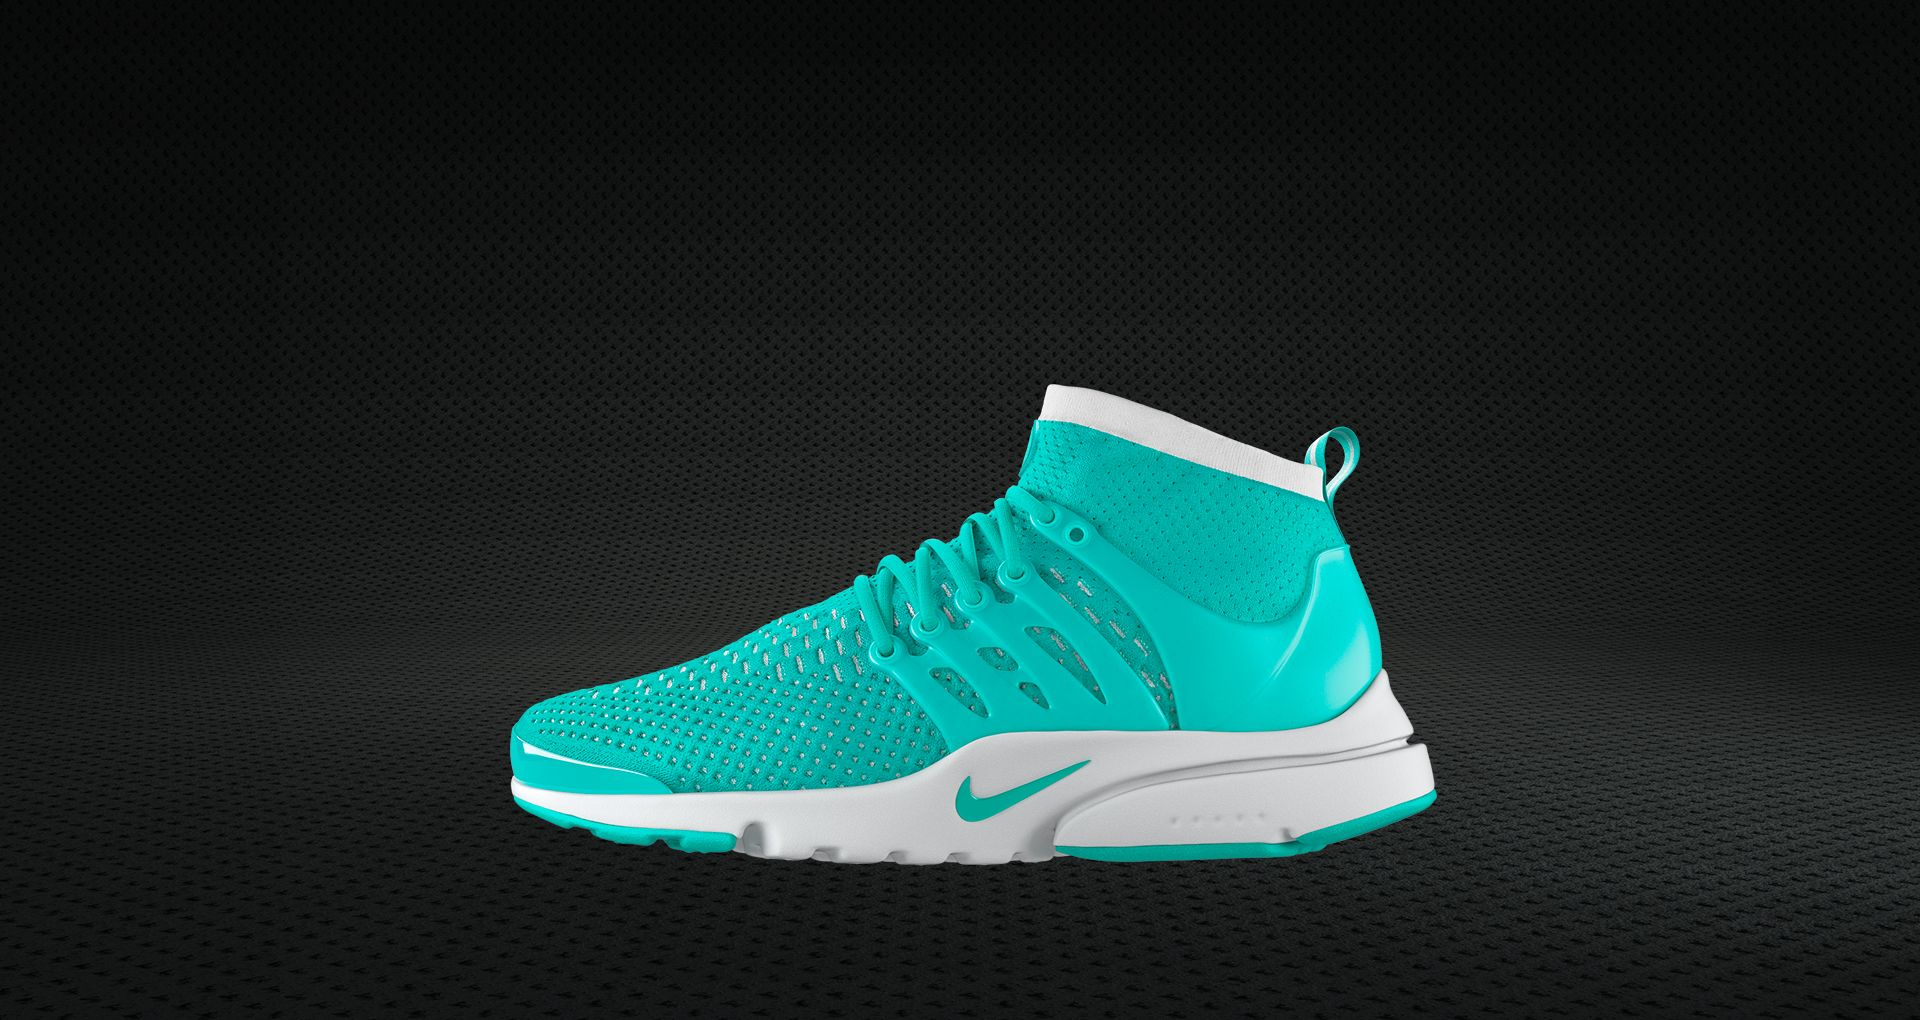 low priced 62caf 3e0bb Shop all Nike Soccer. WMNS AIR PRESTO ULTRA FLYKNIT